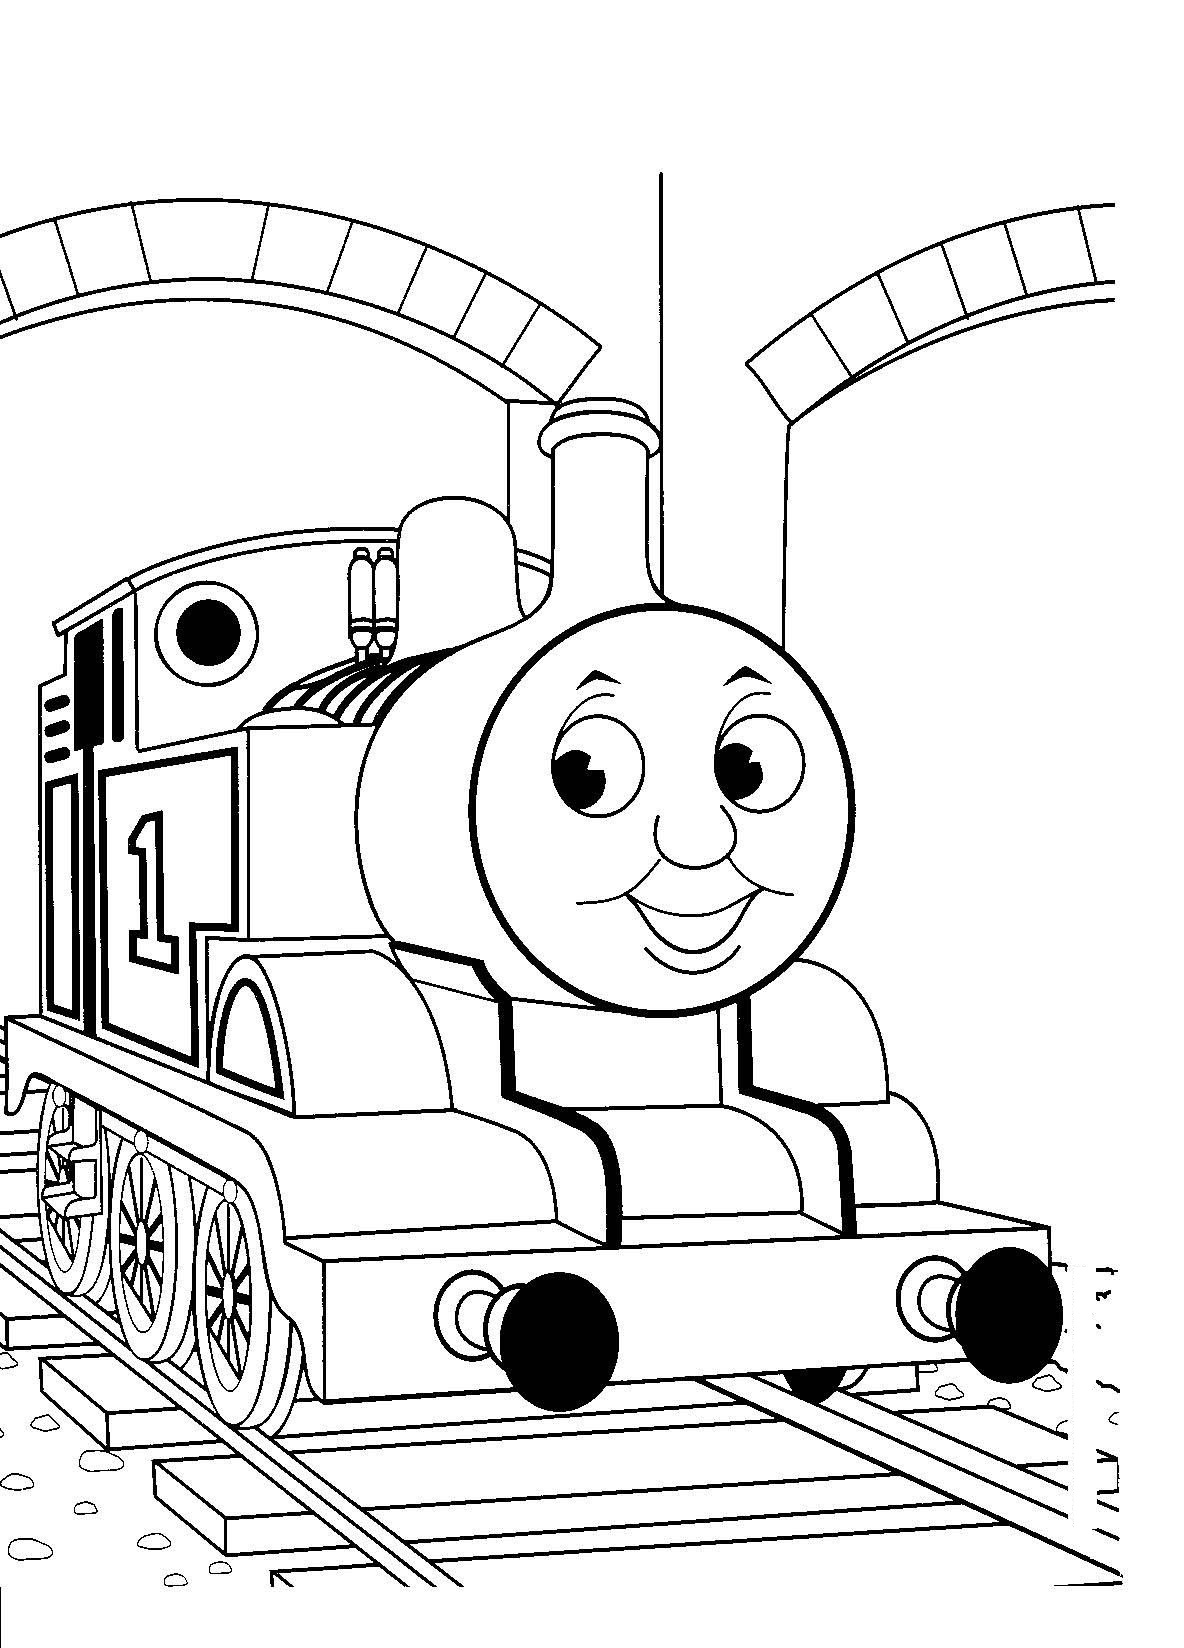 free printable train coloring pages for kids printable train stencils train printable coloring pages